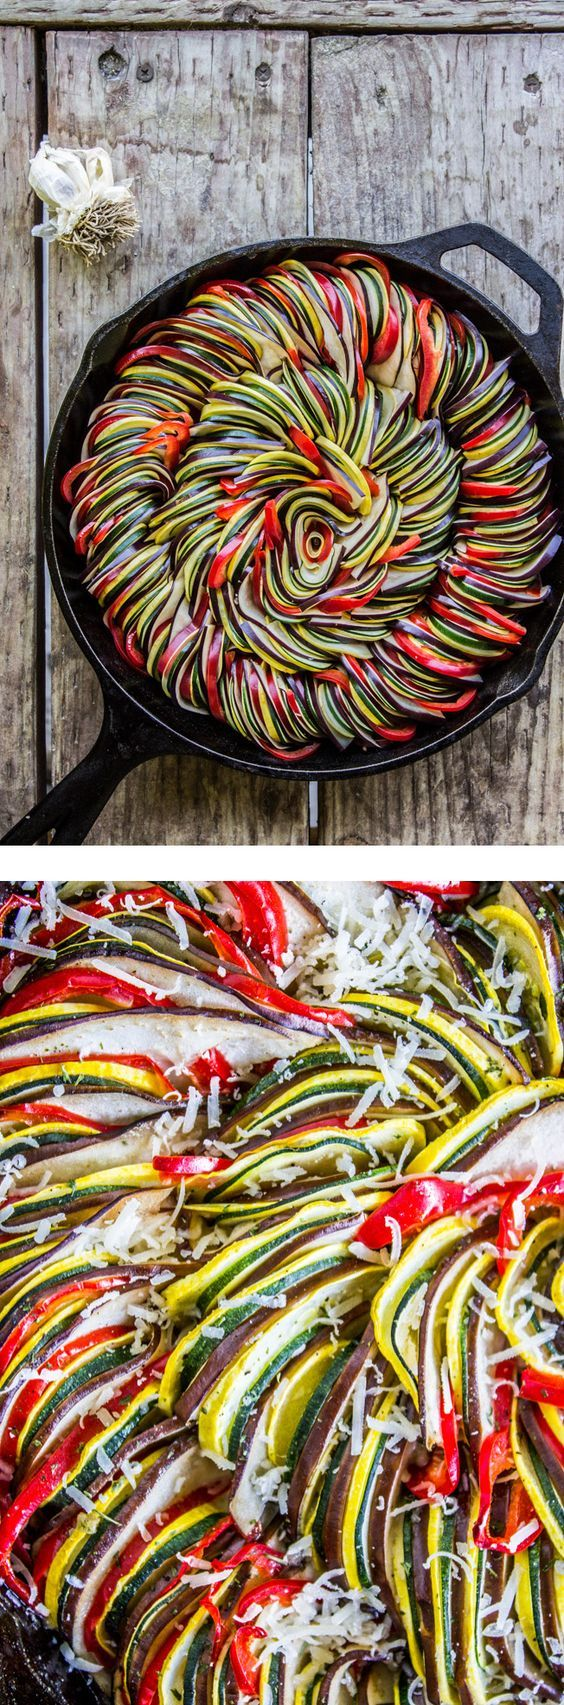 Roasted Garlic Ratatouille Recipe!